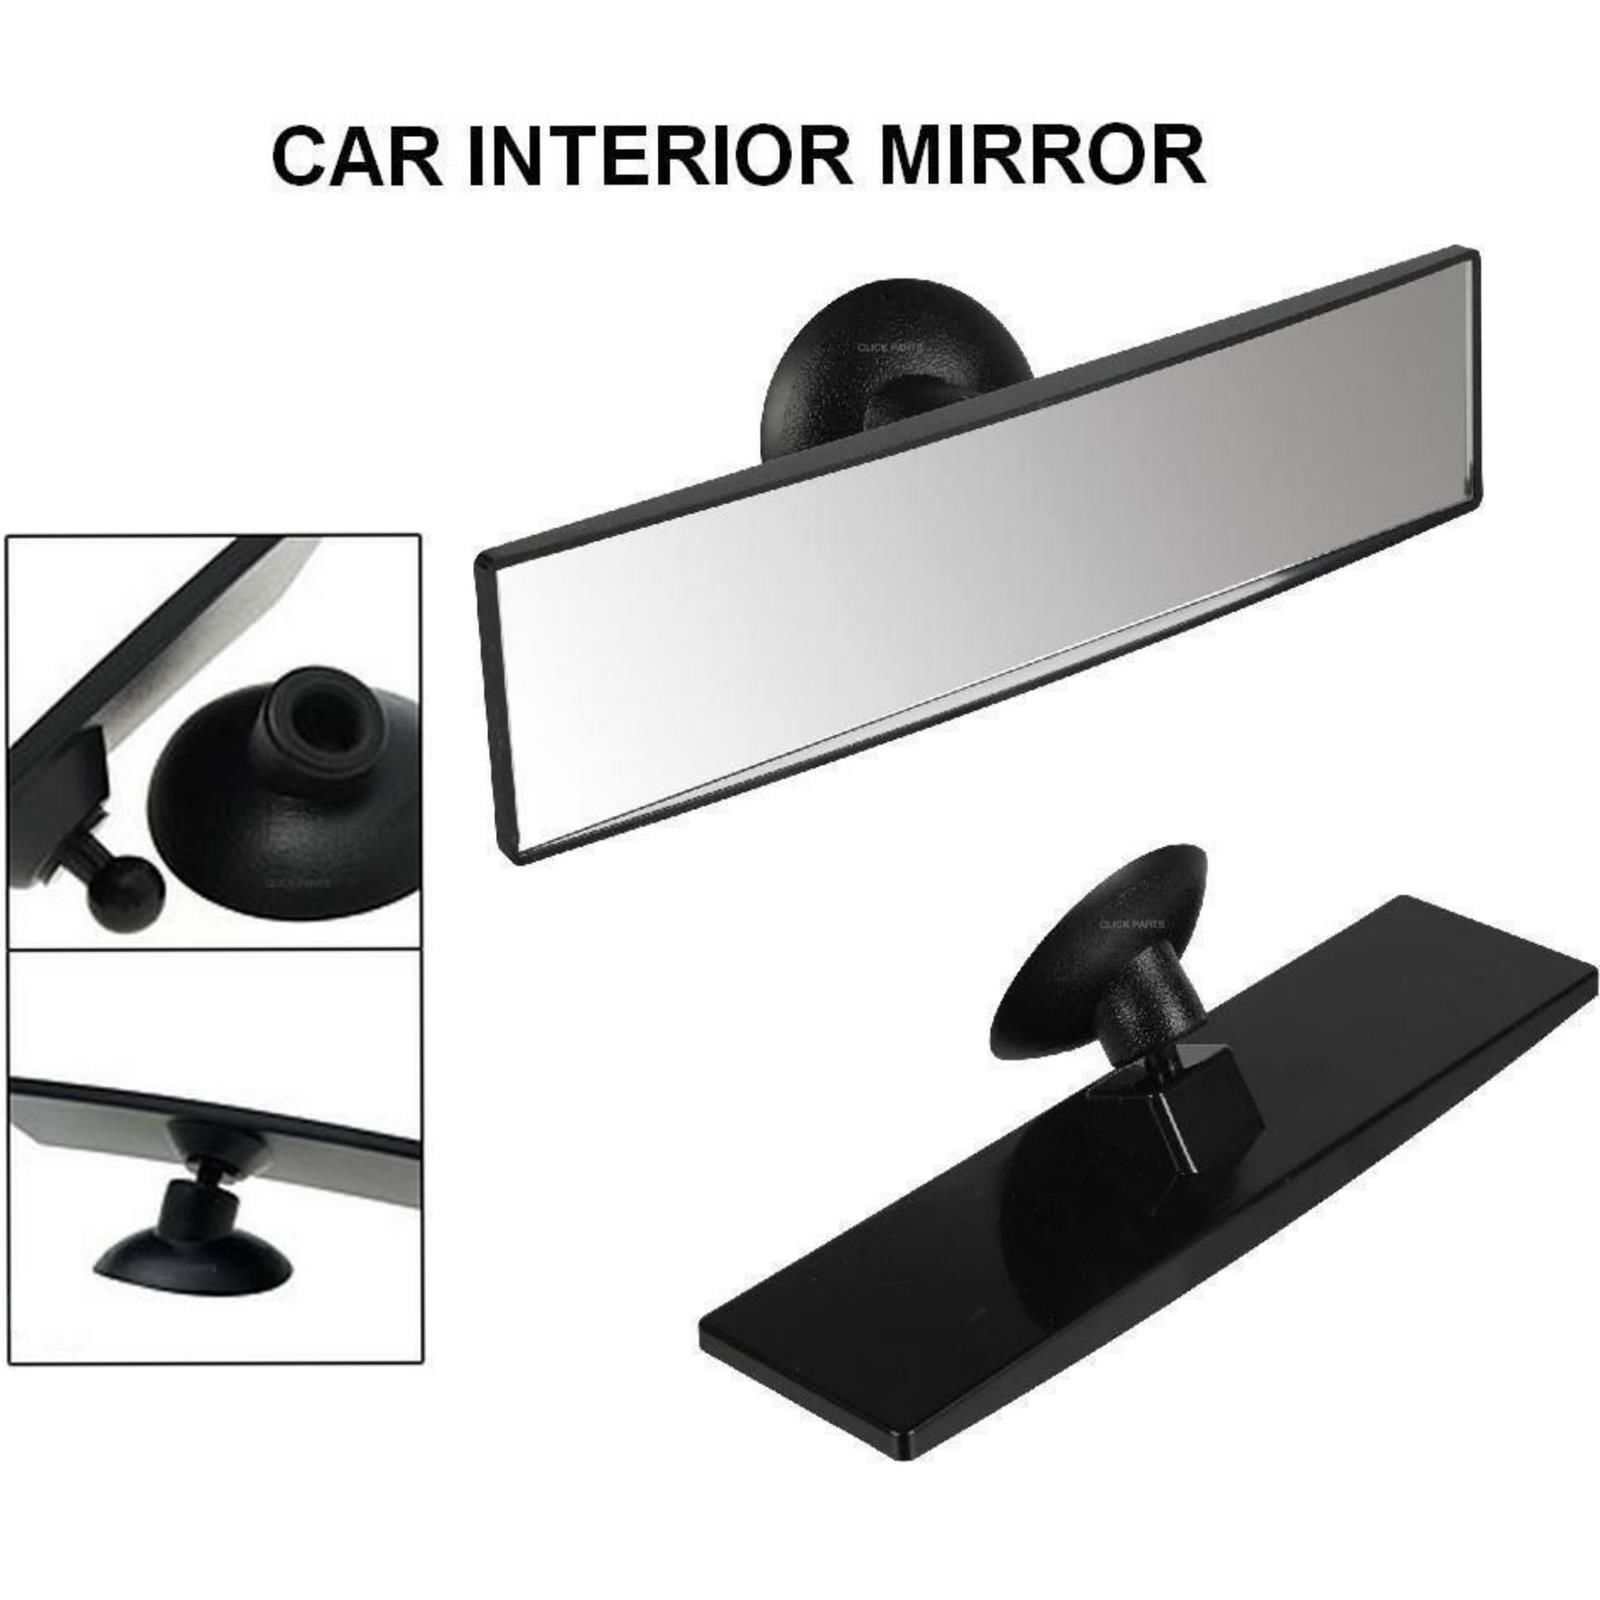 REAR VIEW SUCTION CUP DRIVING INSTRUCTOR MIRROR WIDE ANGLE UNIVERSAL FIT 81516